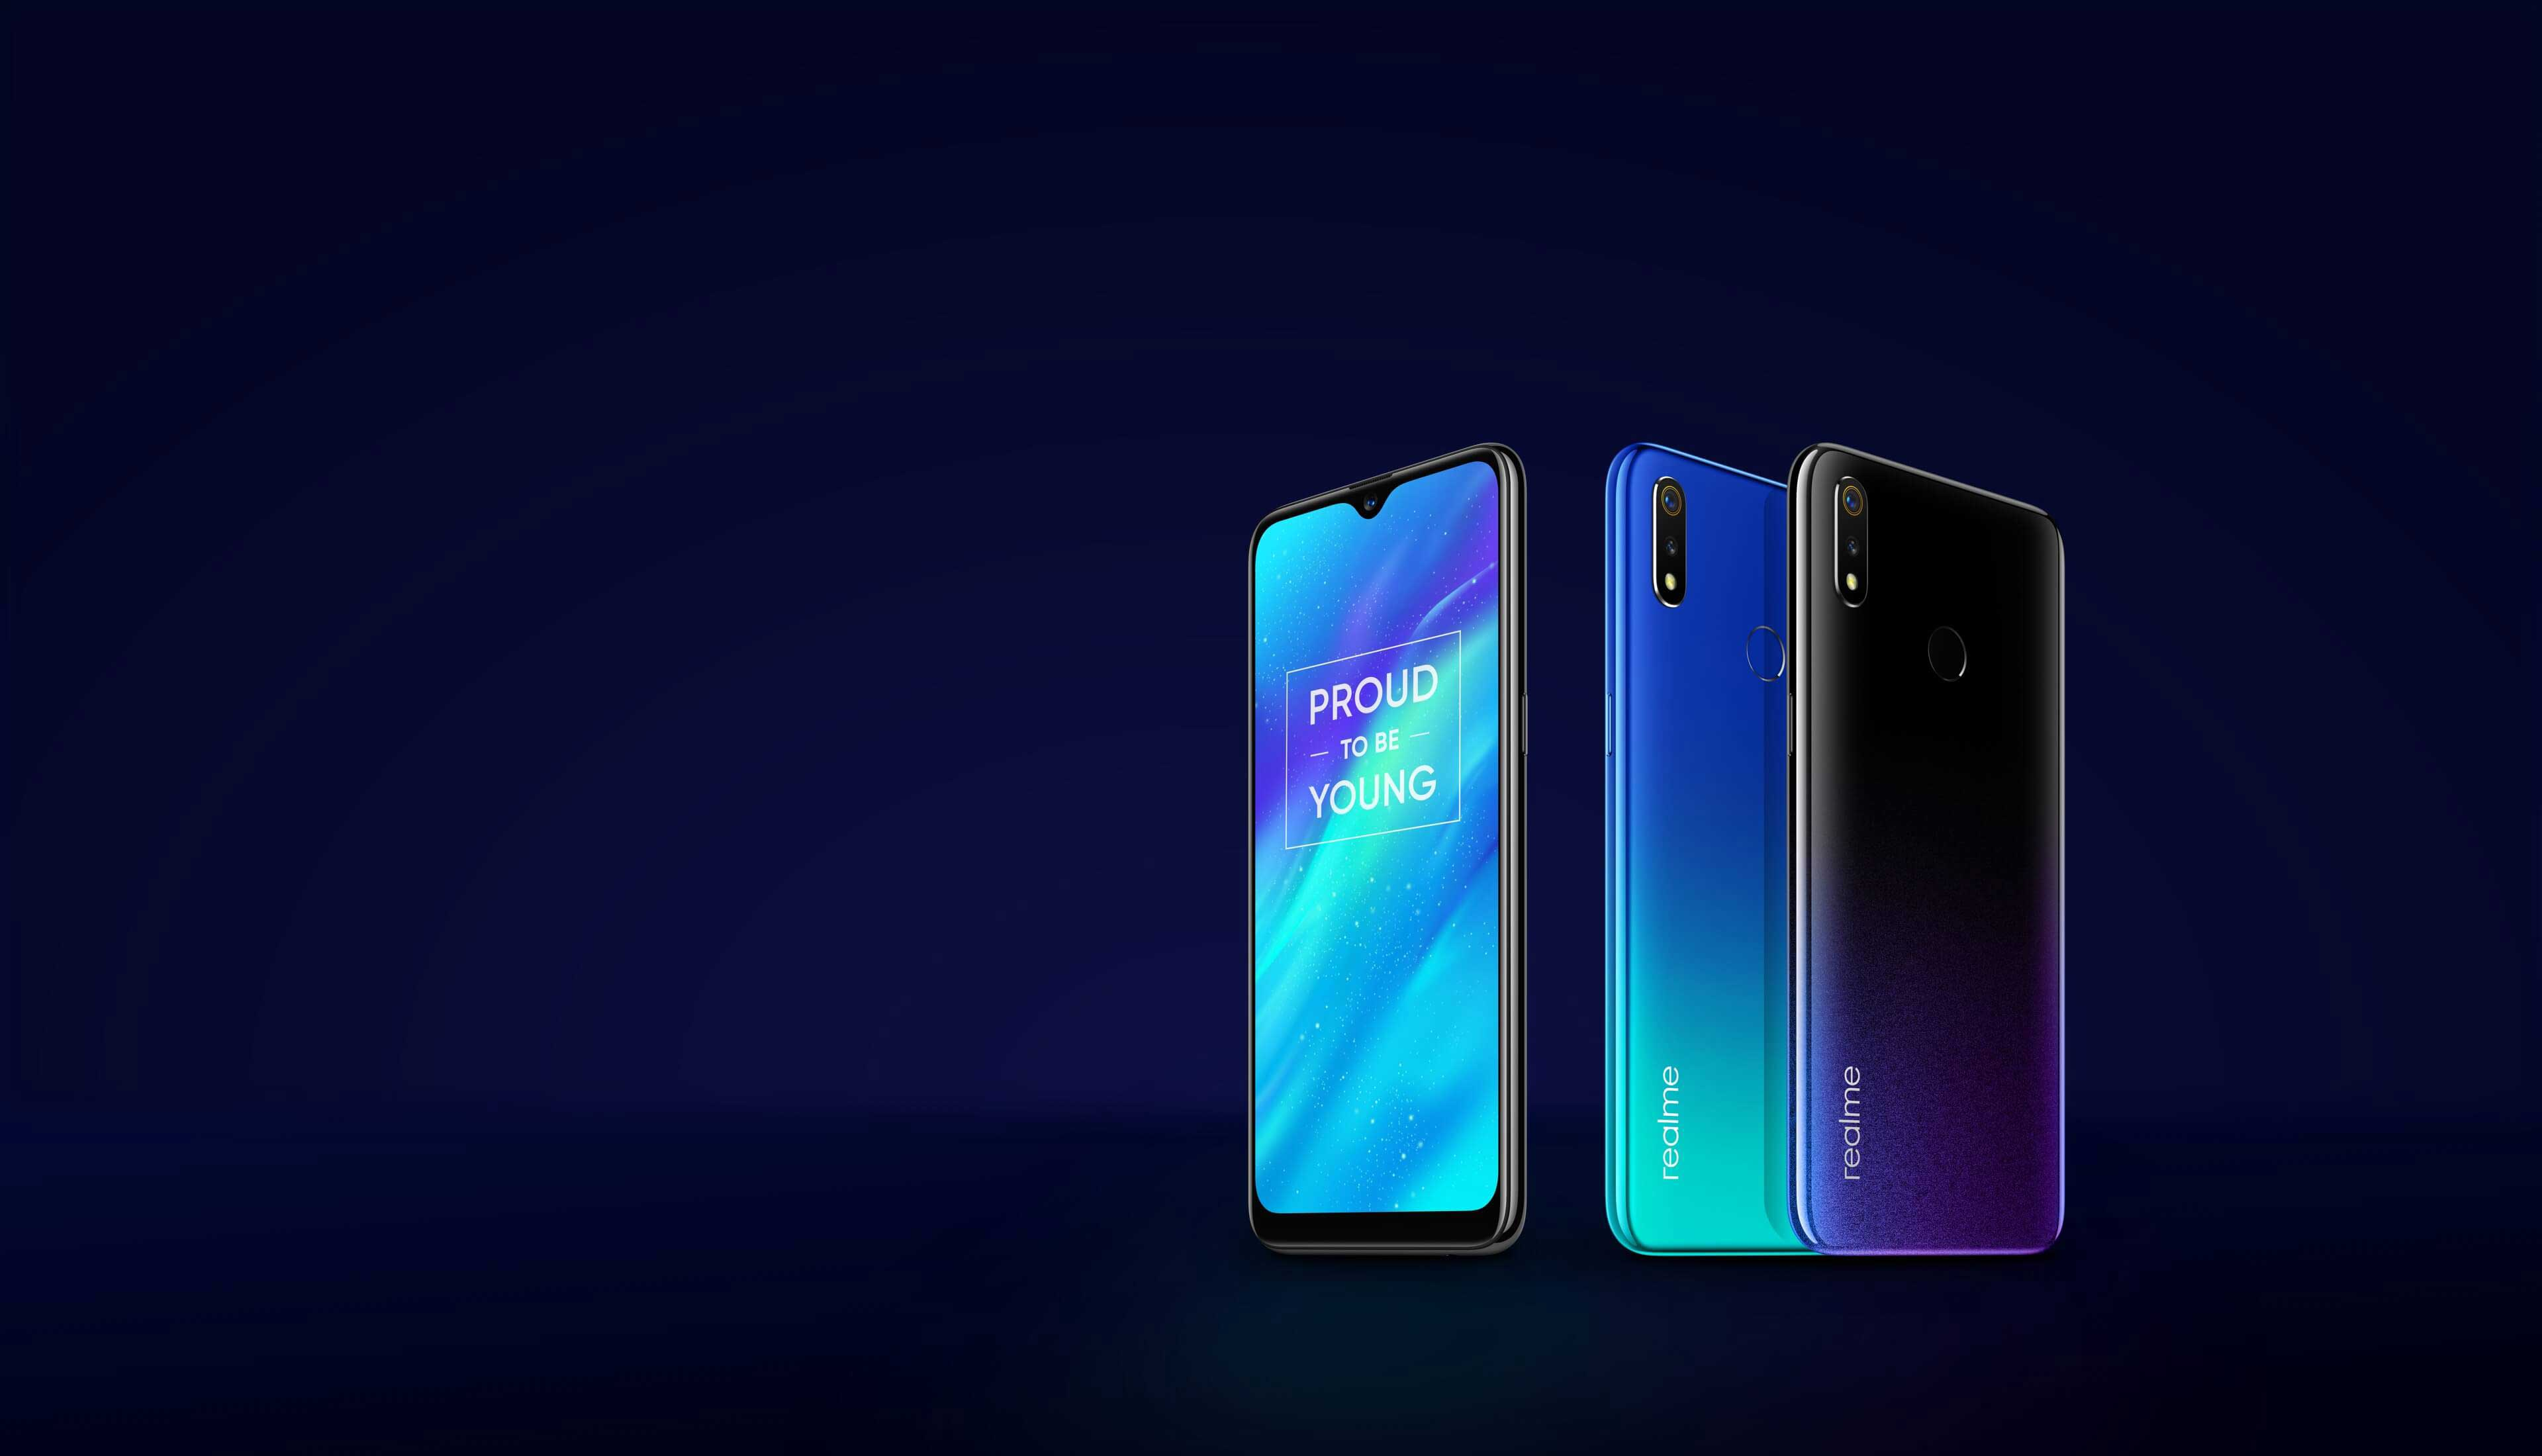 Realme 3 Launched In India With Helio P70 Expected Price In Nepal